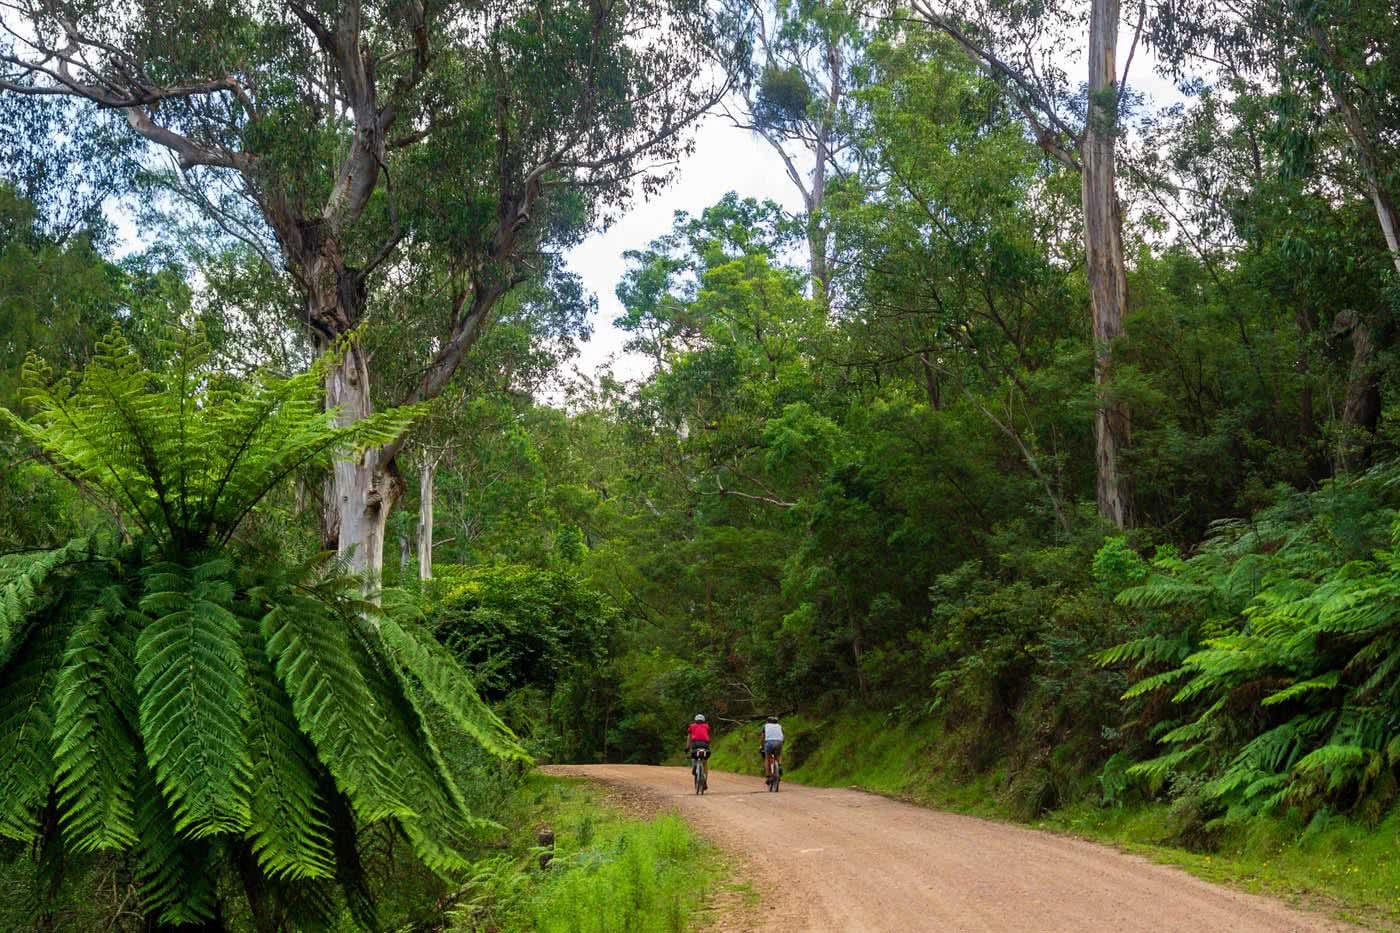 Bikepacking Canberra To Batemans Bay, Matti Gould, dirt road, bikes cycling, forest